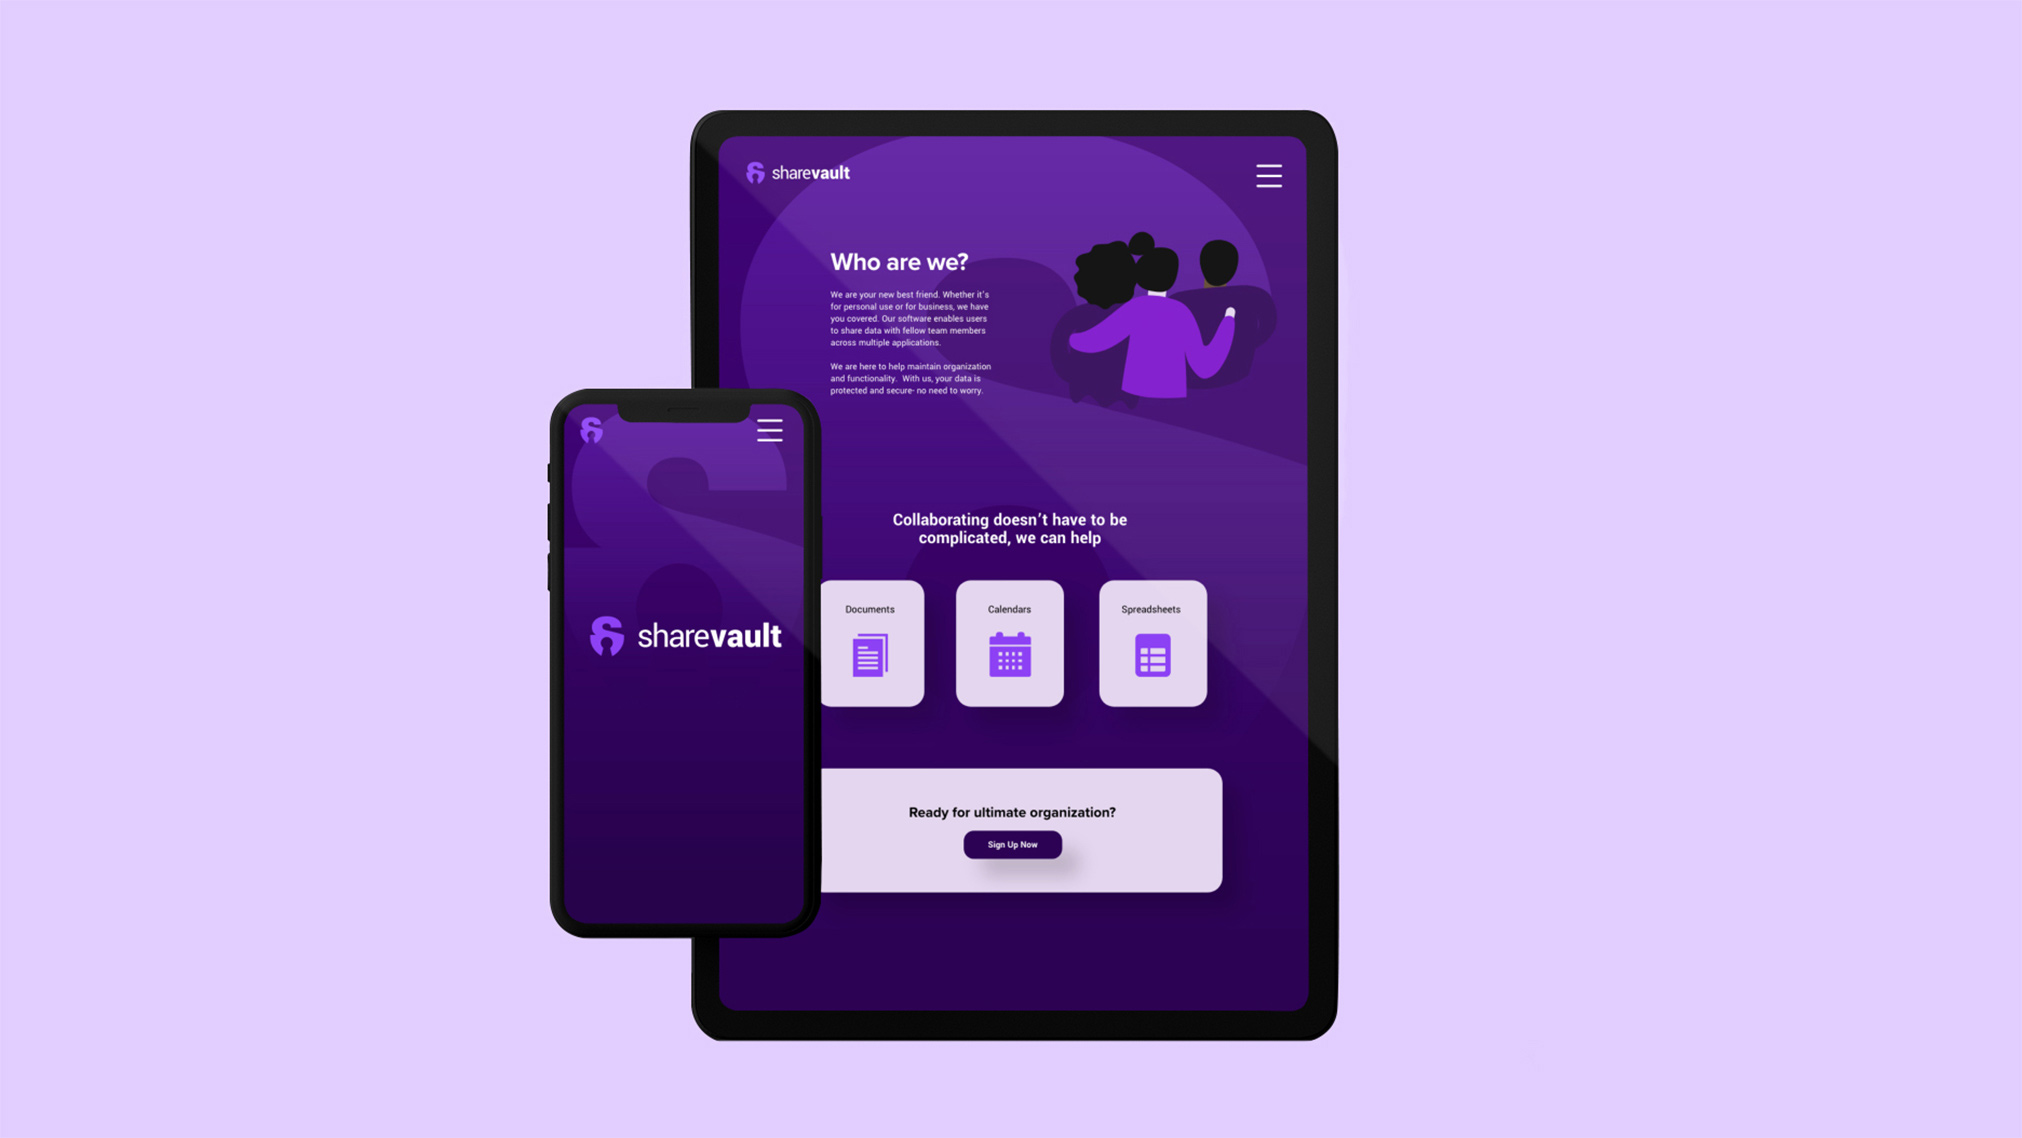 Sharevault is a mockup SAAS company, specializing in cloud sharing services. Their friendly and trendy design aesthetic reflects the company's mantra of bringing human elements back to tech services.